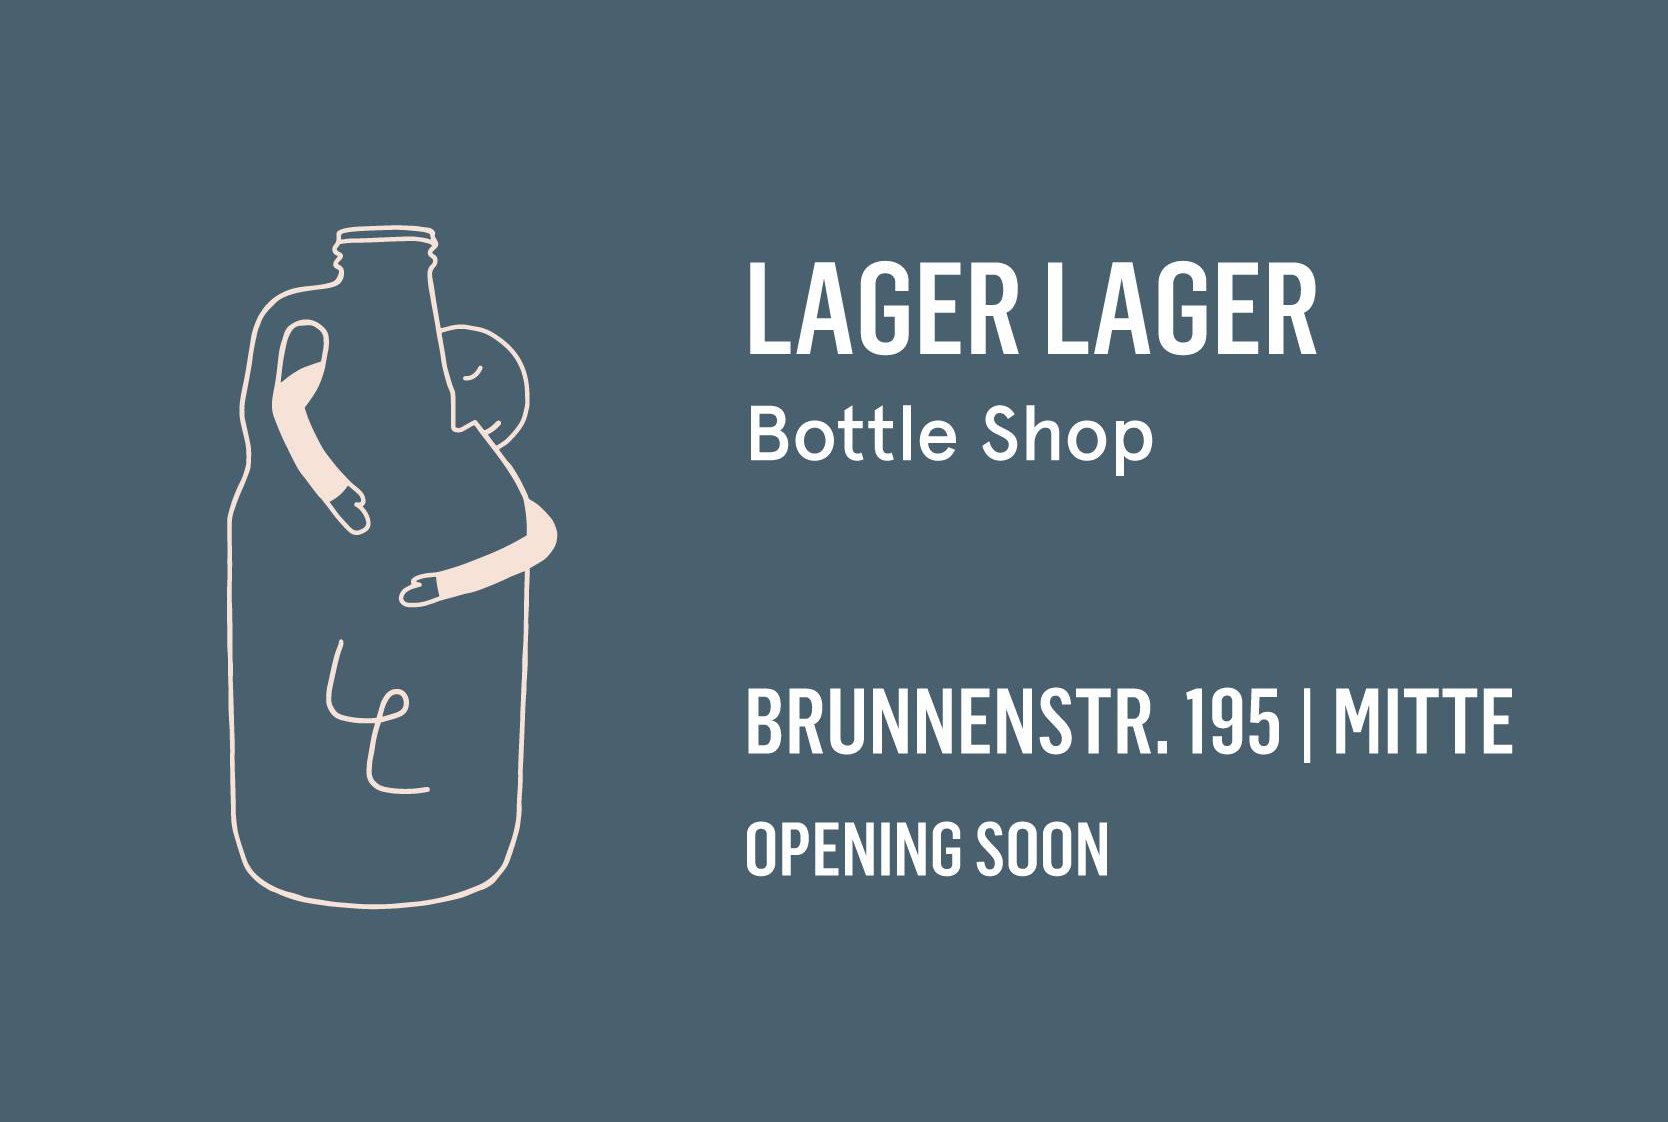 Lager Lager Mitte - Opening Soon